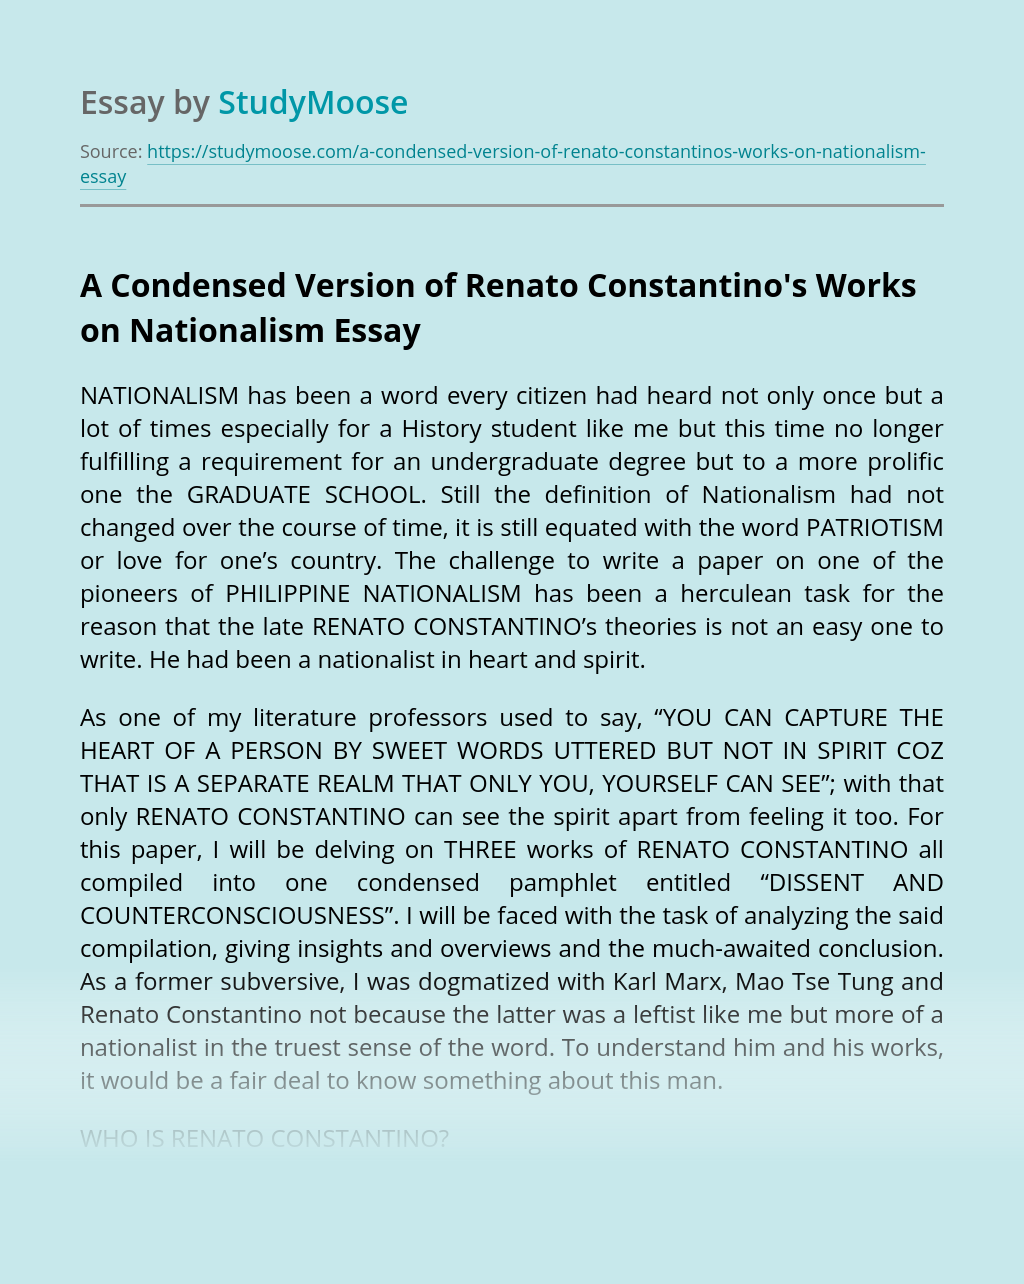 A Condensed Version of Renato Constantino's Works on Nationalism